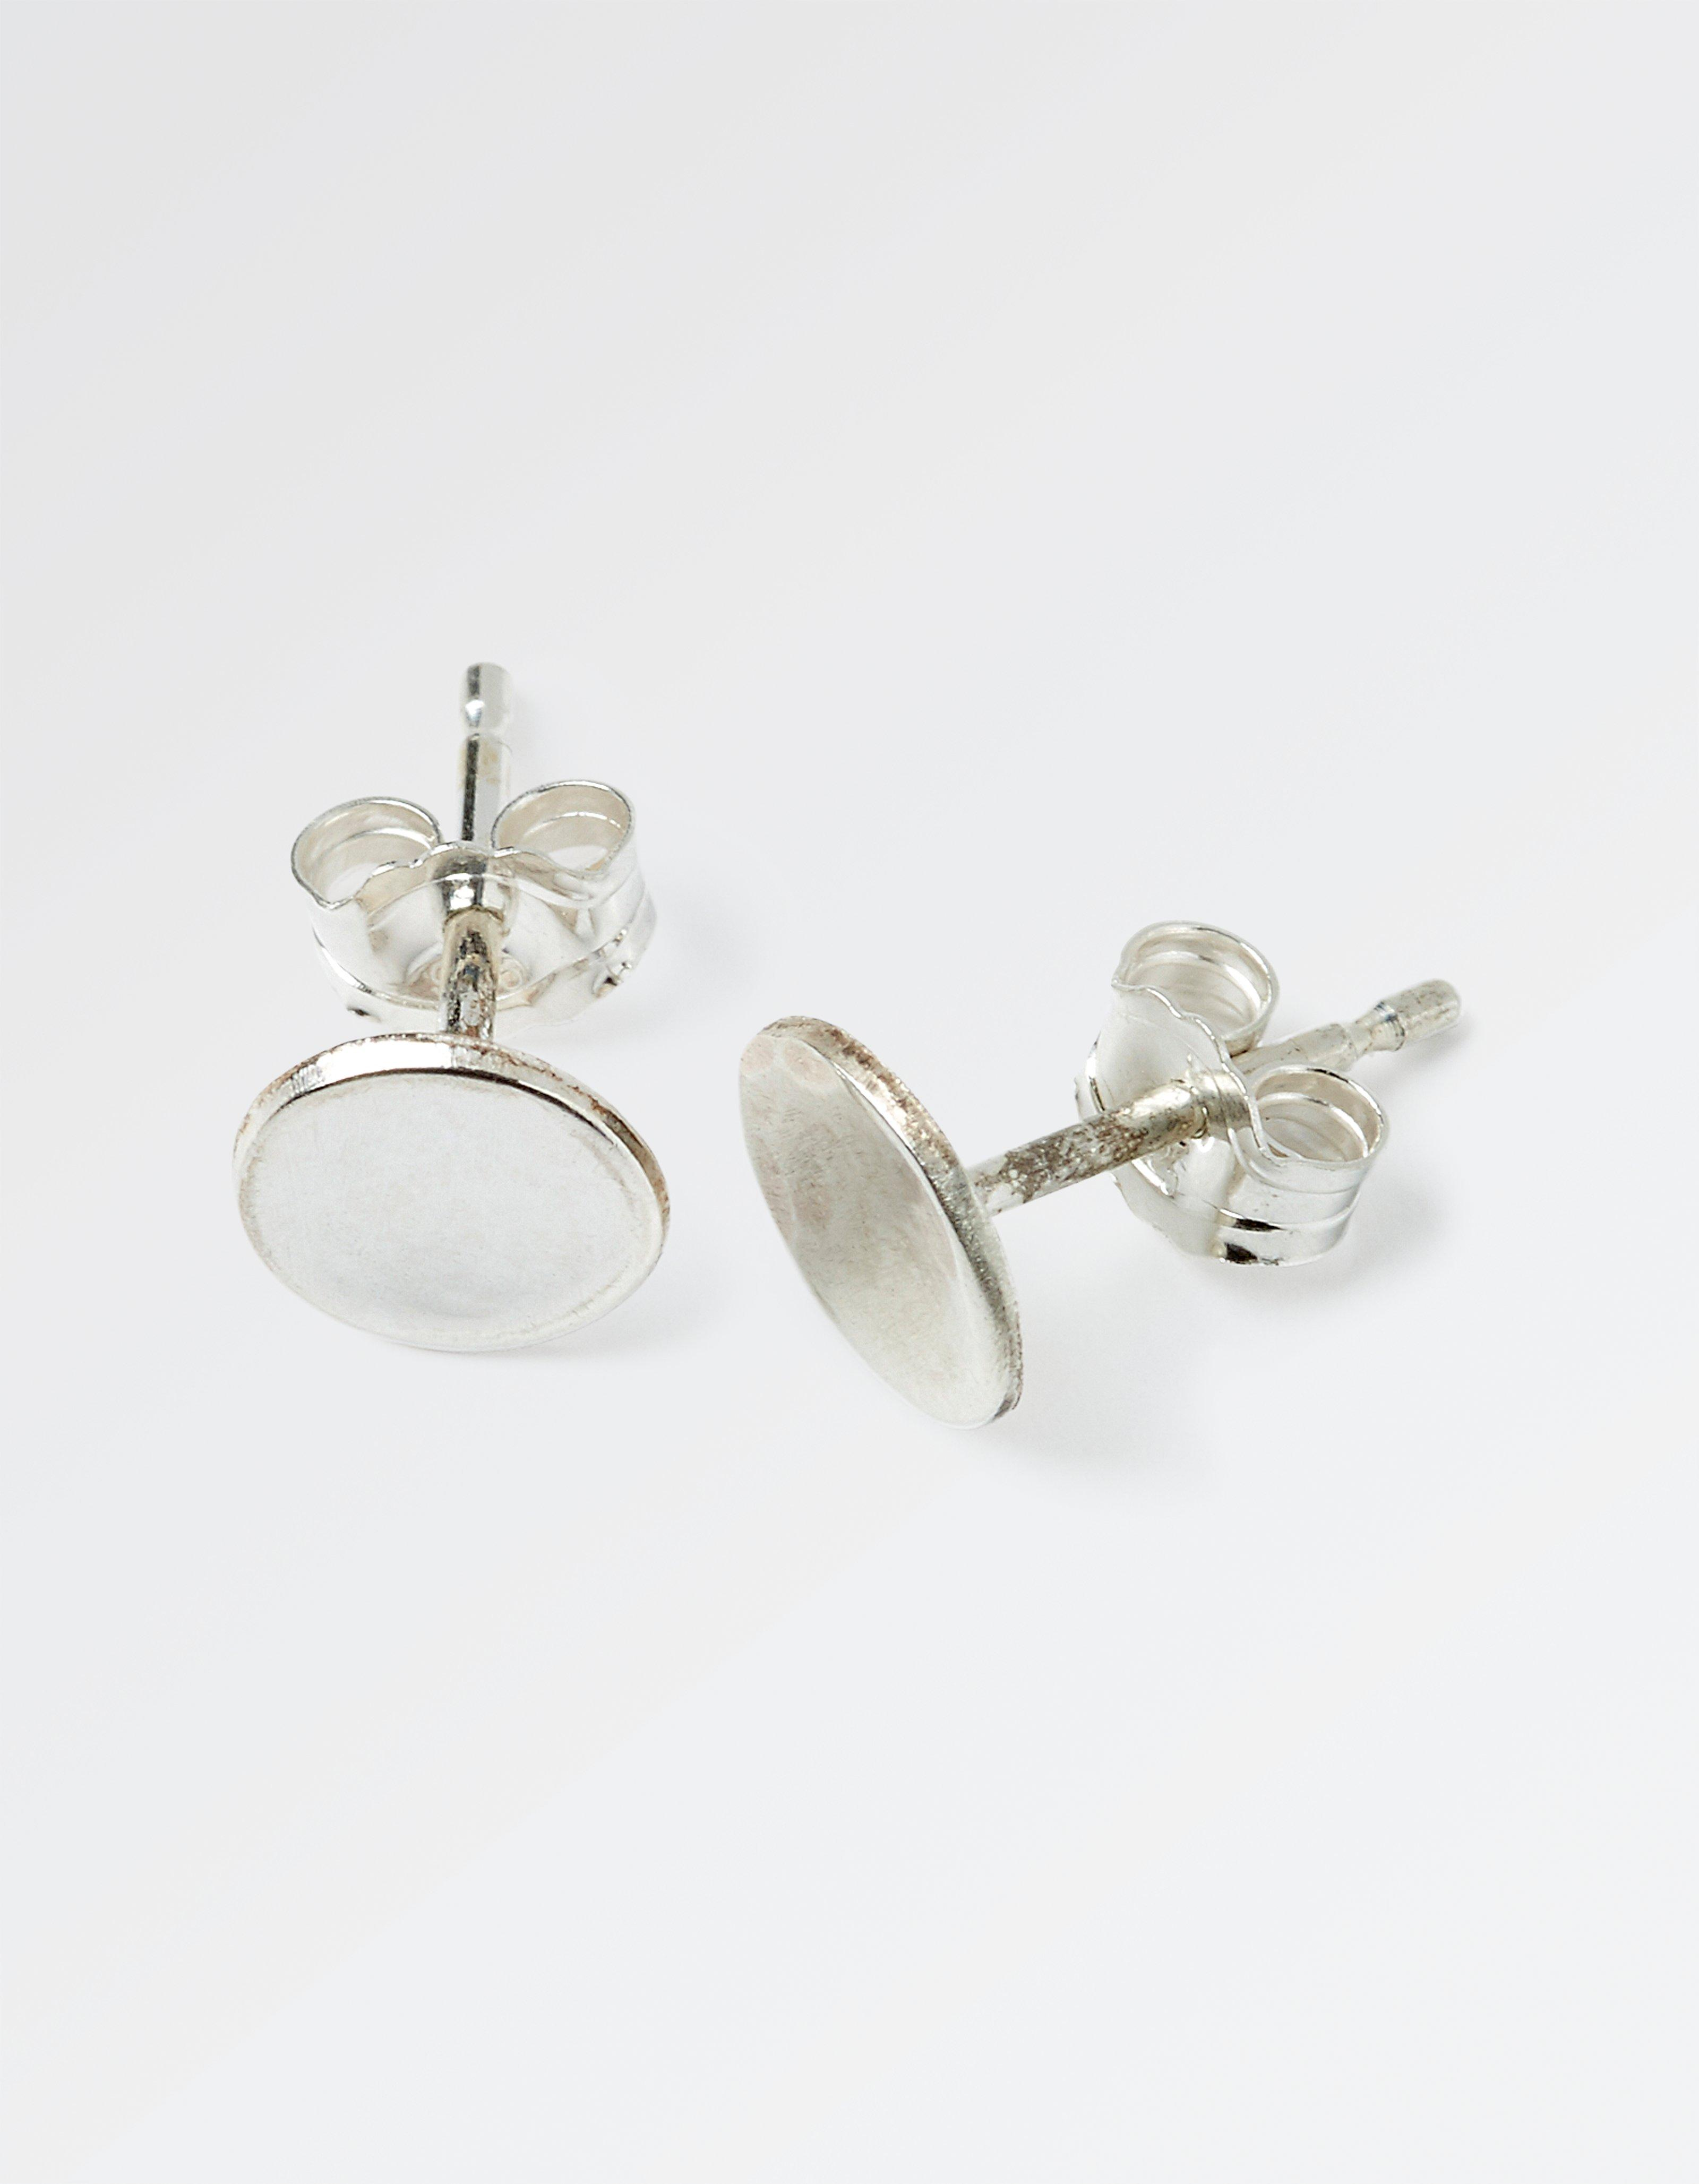 The Old Farmhouse Silver Disc Stud Earrings